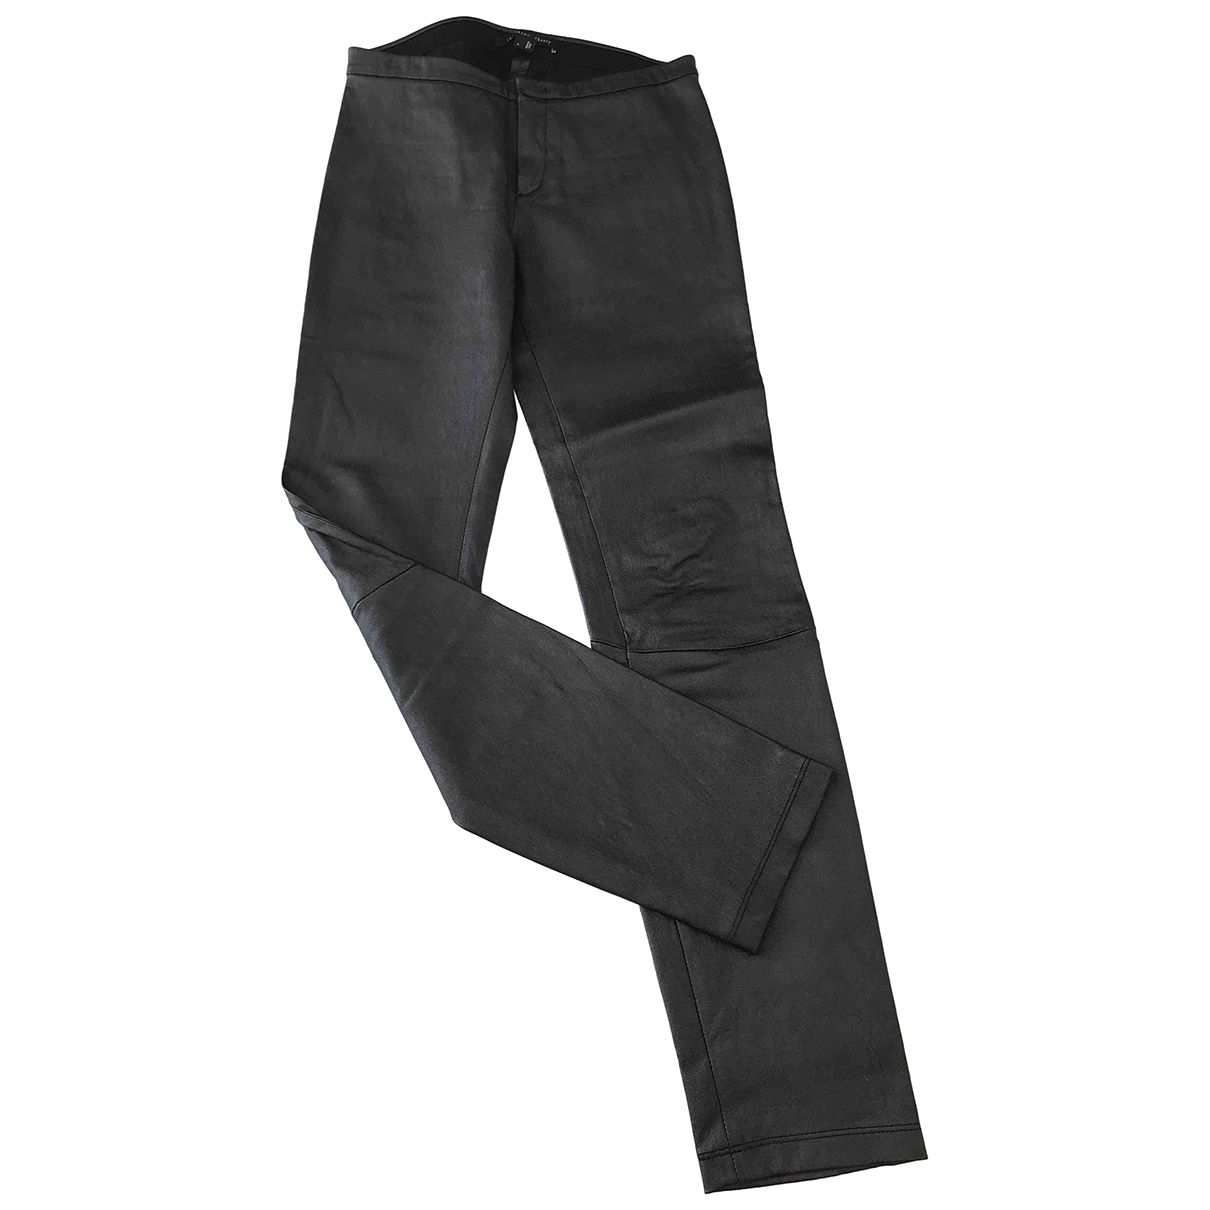 Theory N Metallic Leather Trousers for Women 4 US